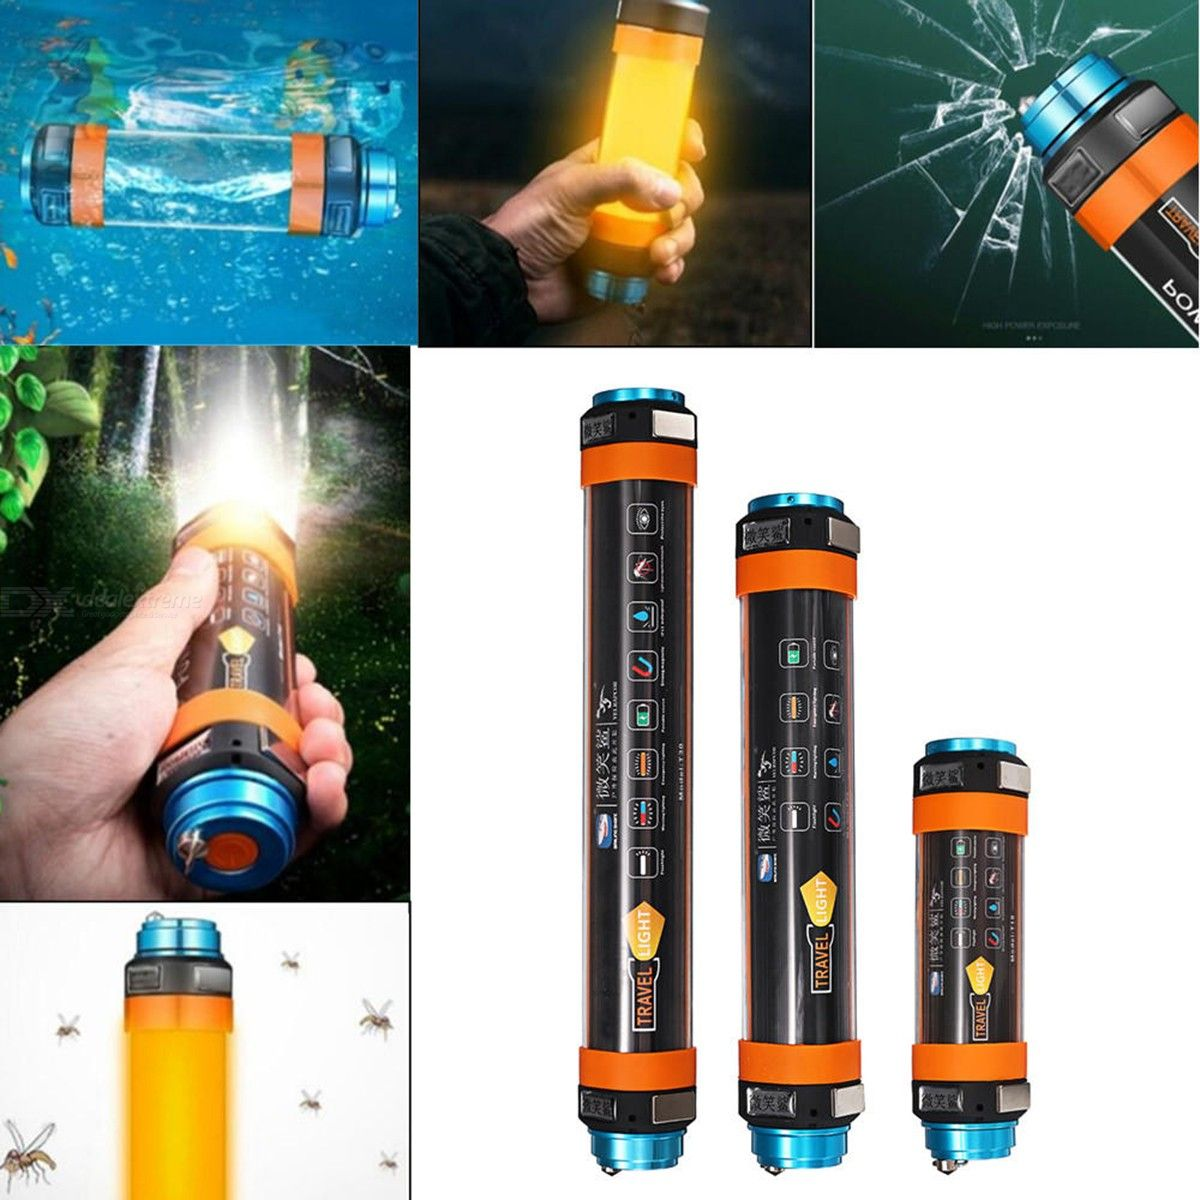 Rechargeable | Mountaineer | Waterproof | Adventure | Military | Outdoor | Rescue | Light | Camp | Dive | USB | LED